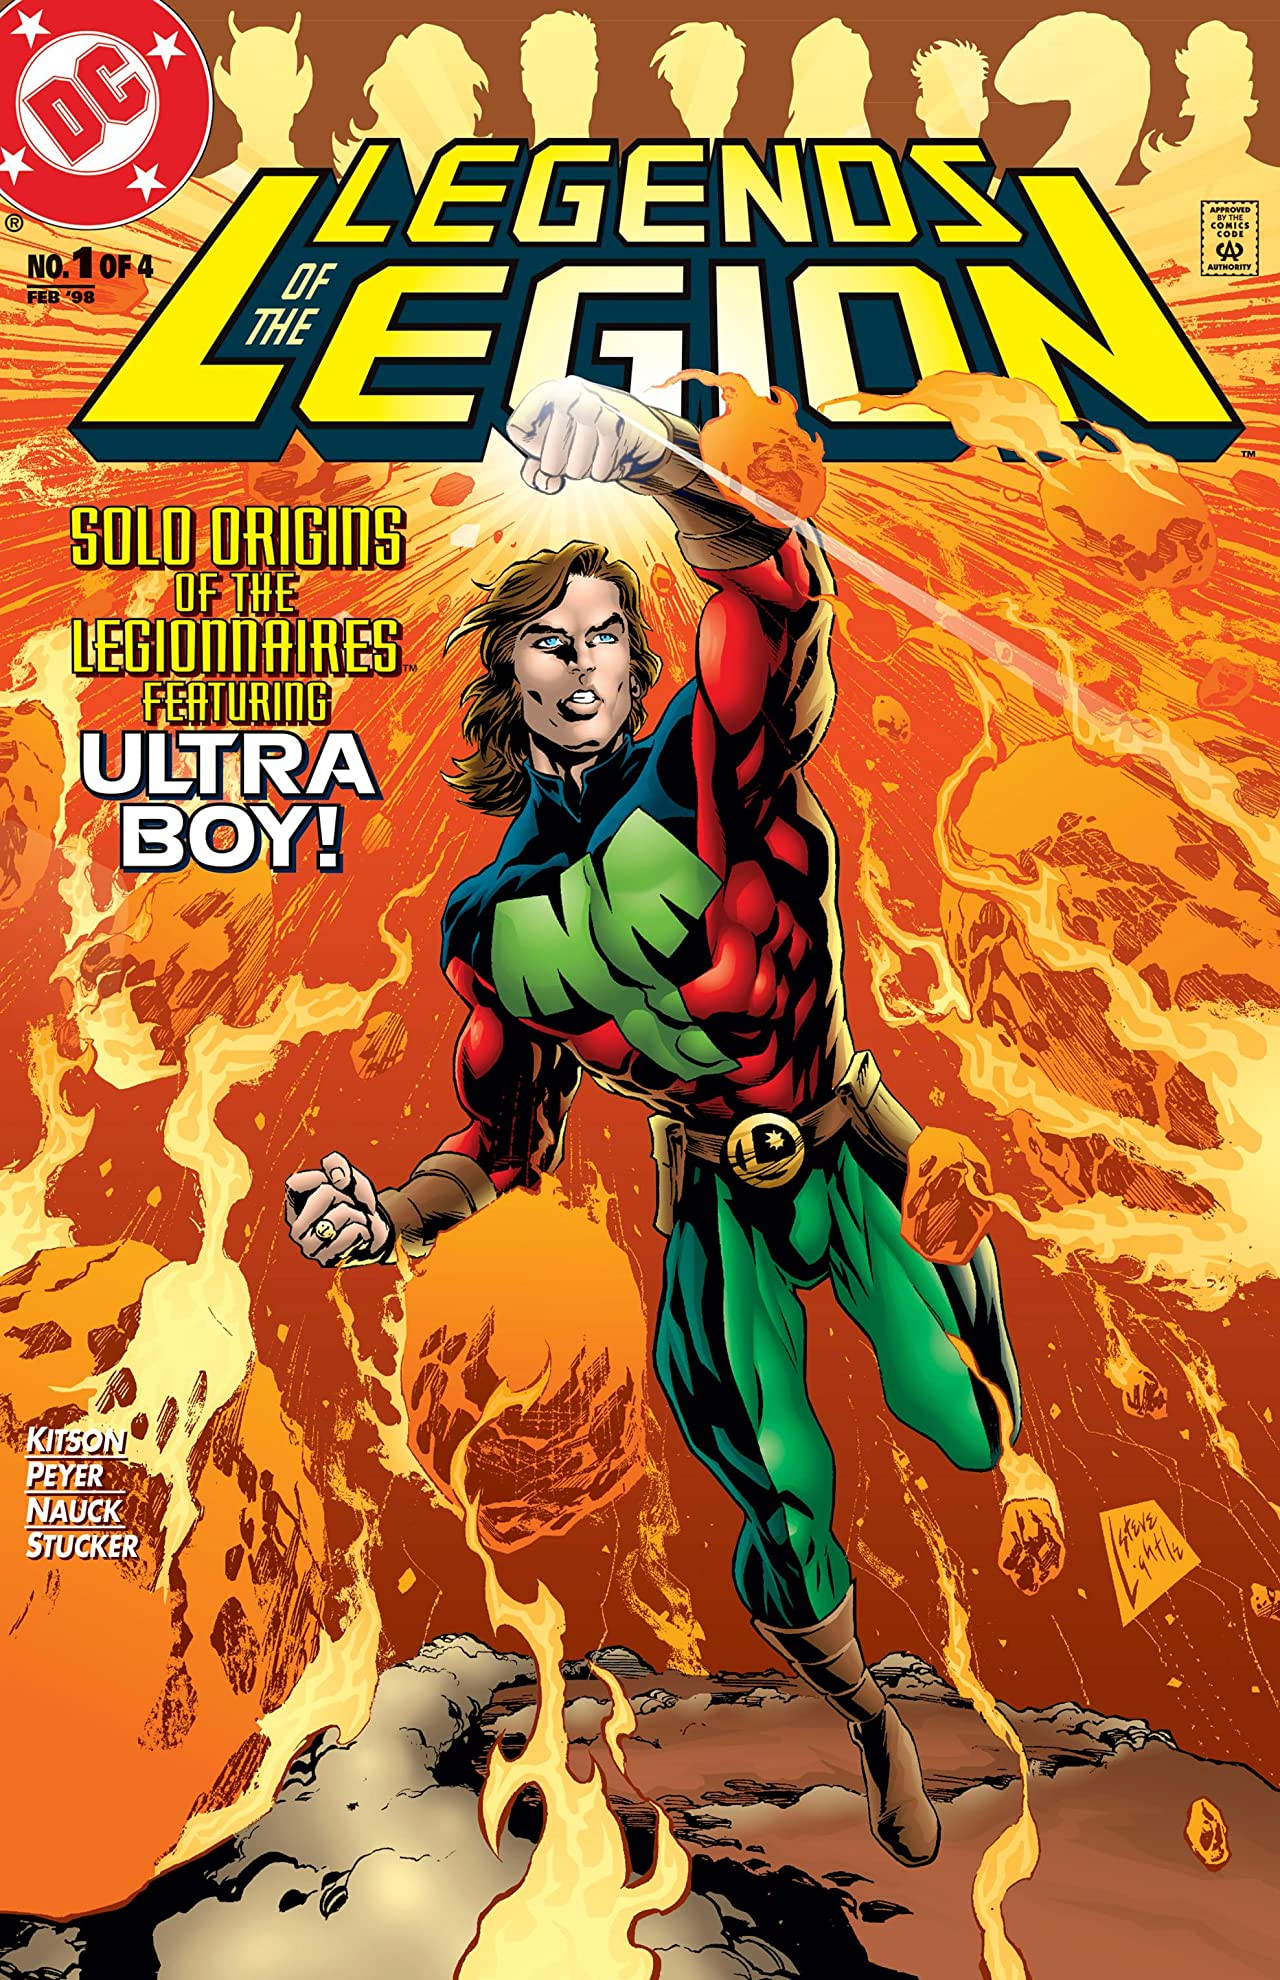 Legends of the Legion (1997-1998) #1